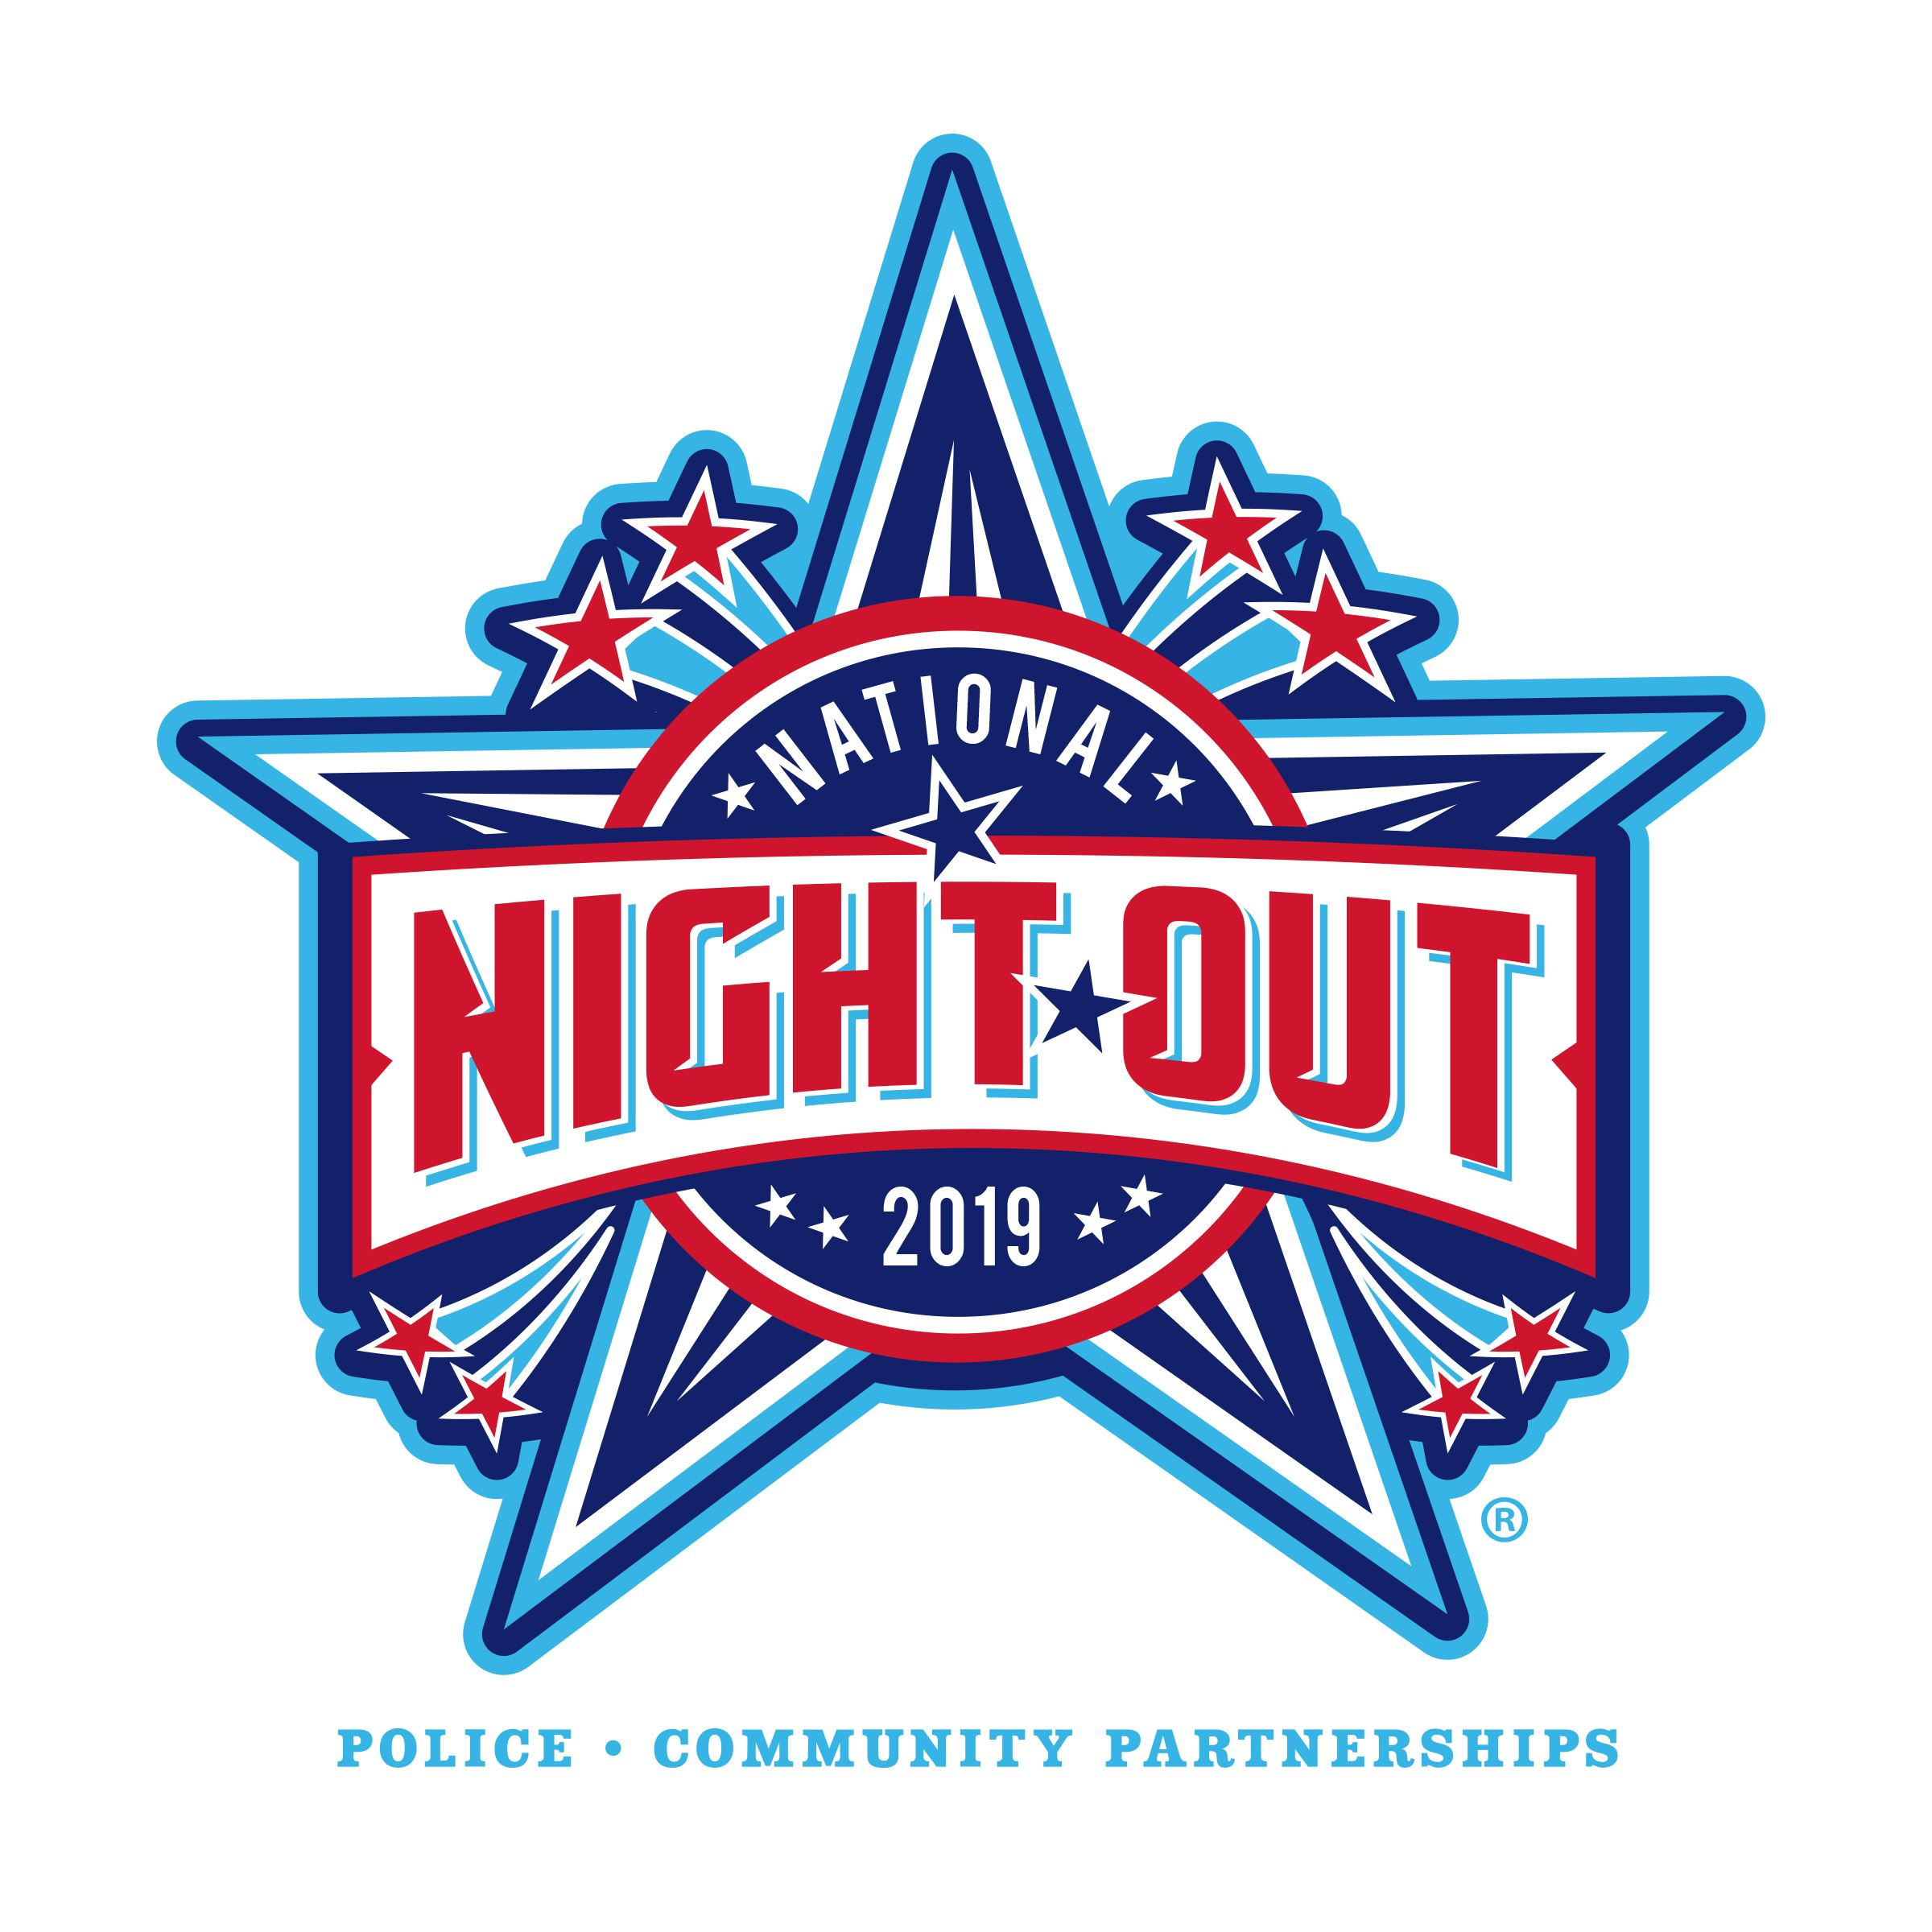 National Night Out logo 2019